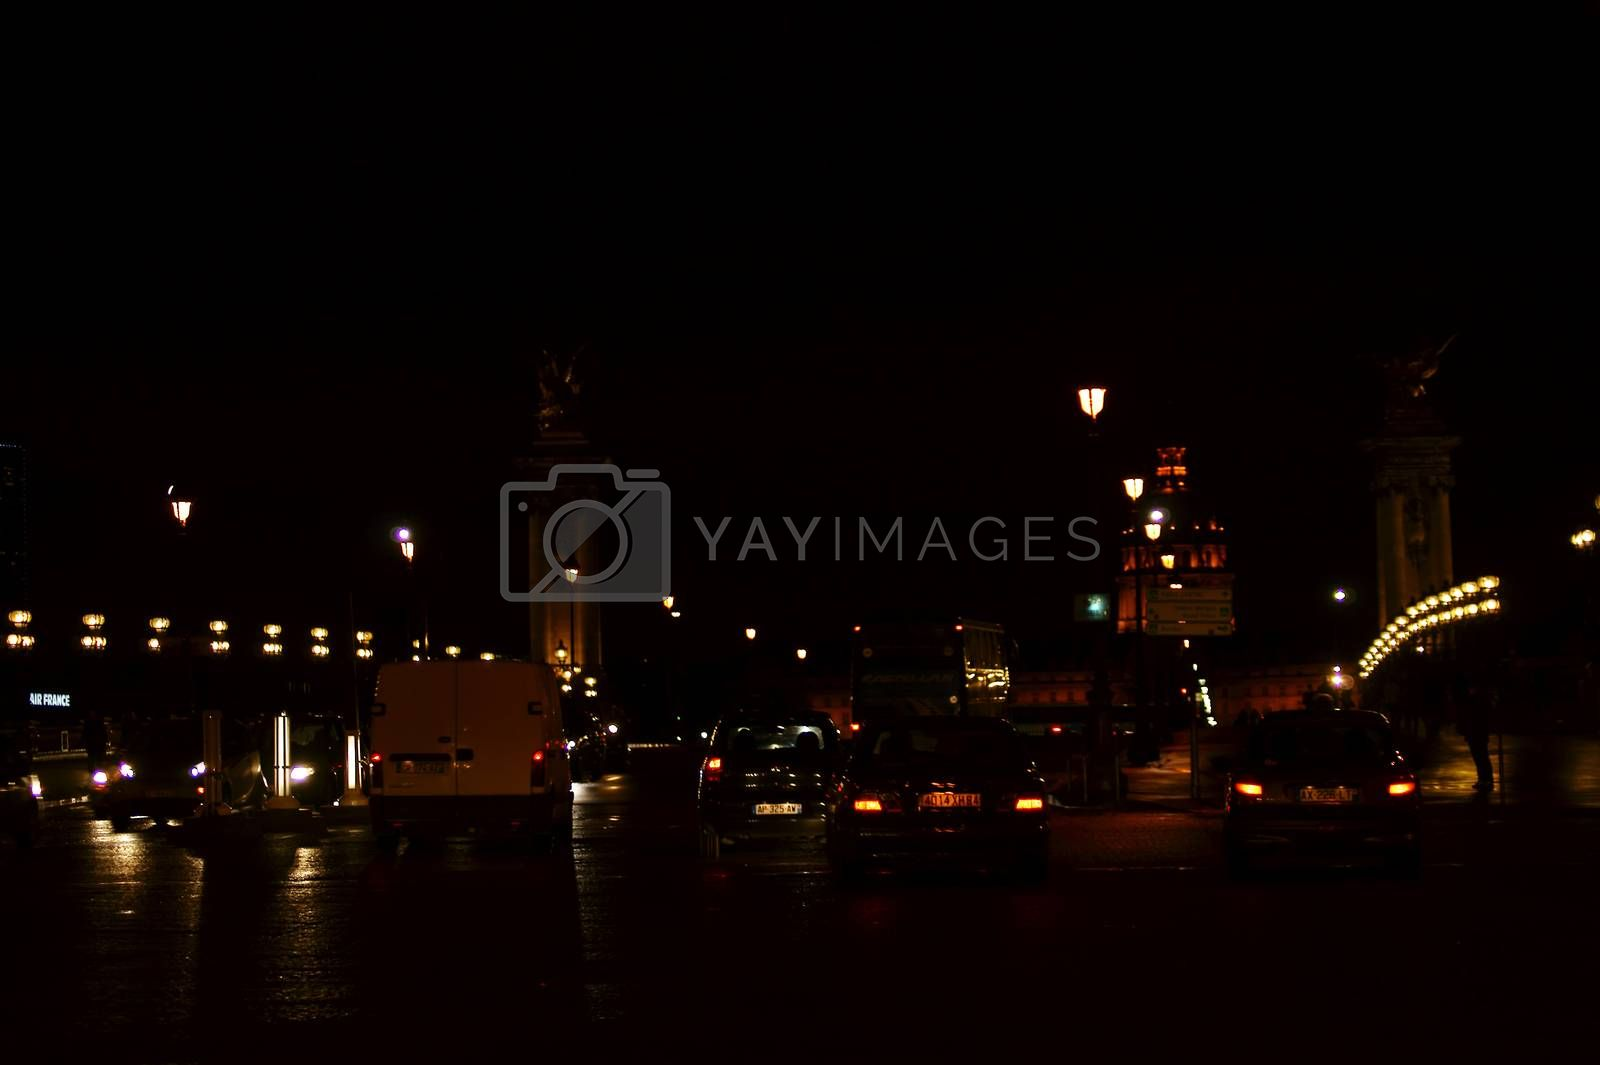 Paris, France - December 30, 2013: The illuminated Pont Alexandre III Bridge at night with traffic and the lighted Invalides dome  in the background on December 30, 2013 in Paris.